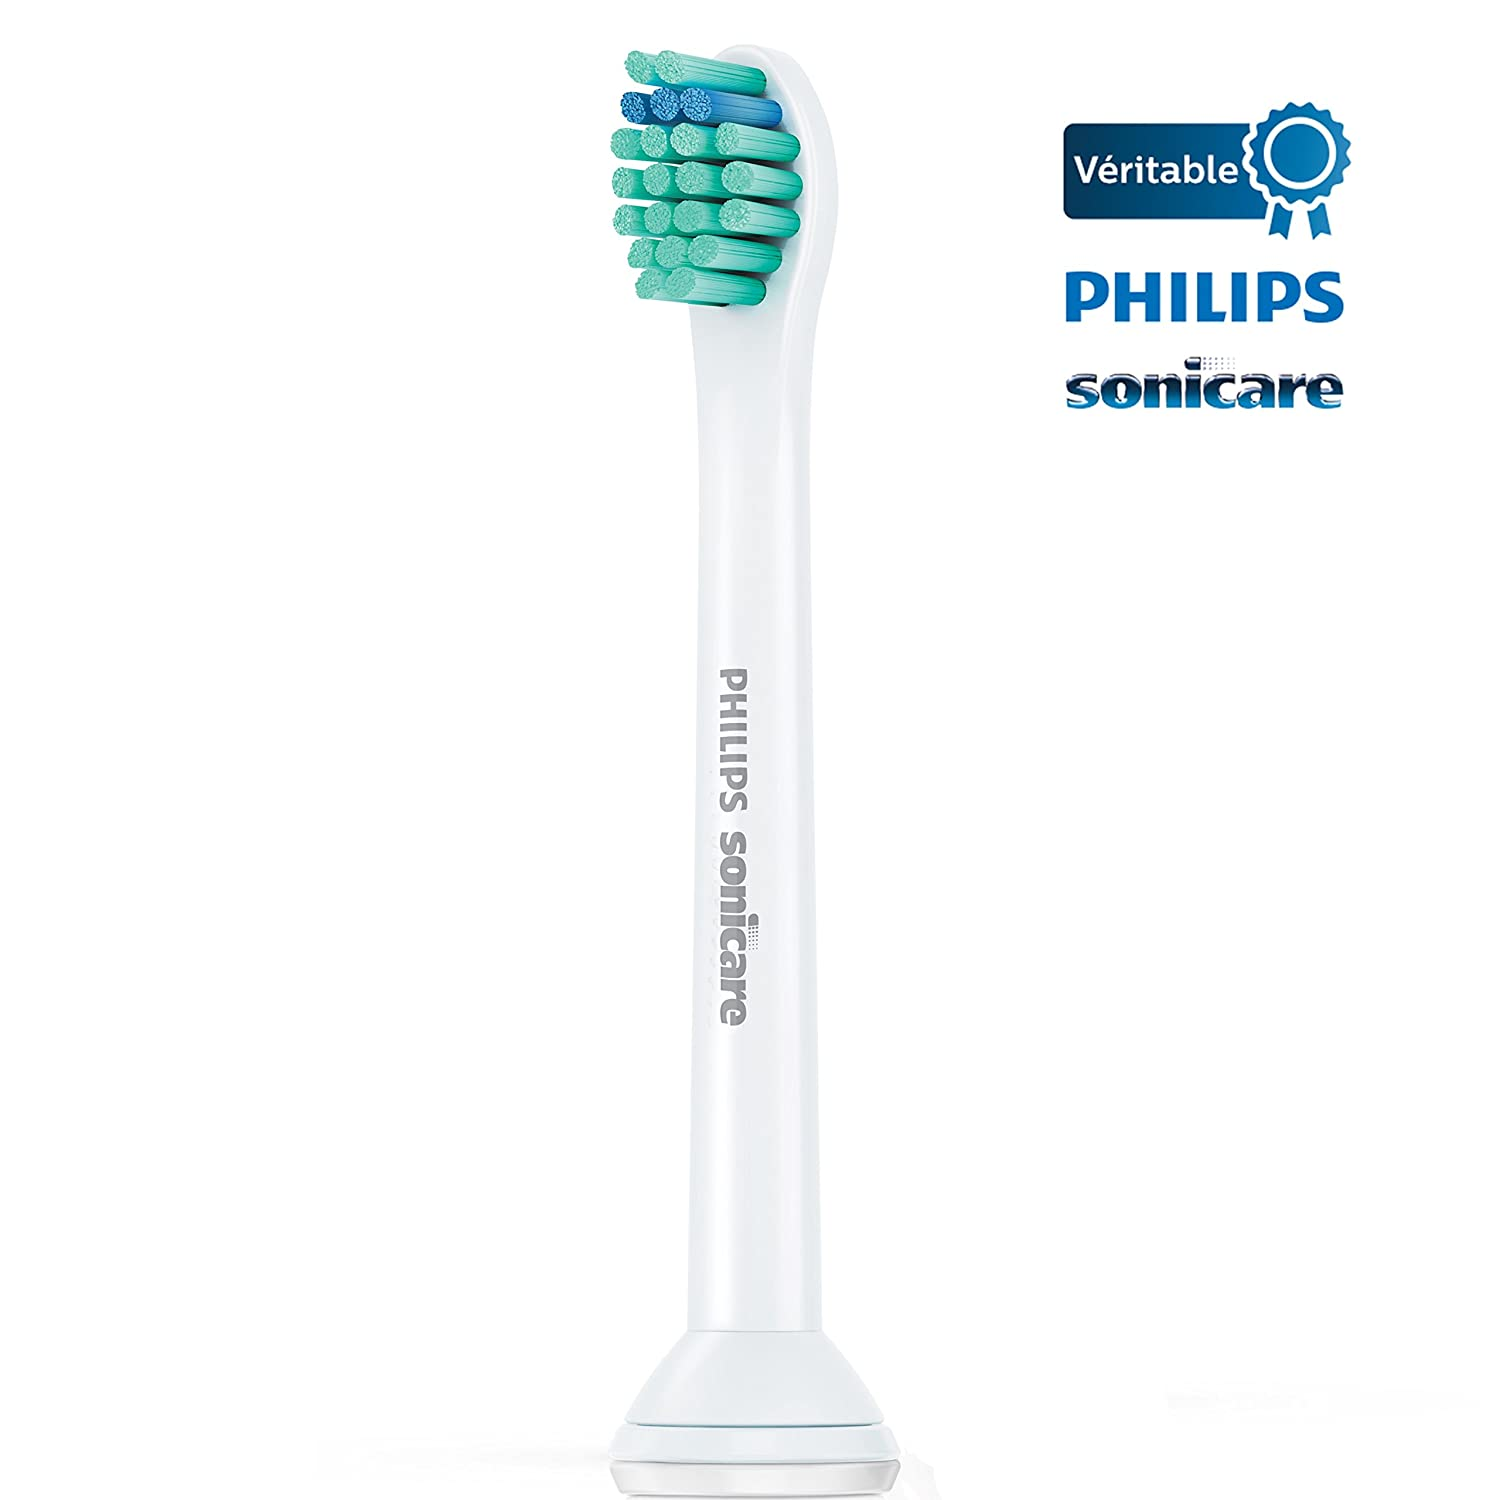 Amazon.com: Philips Mini heads ProResults Compact sonic toothbrush For 2 Pieces: Health & Personal Care